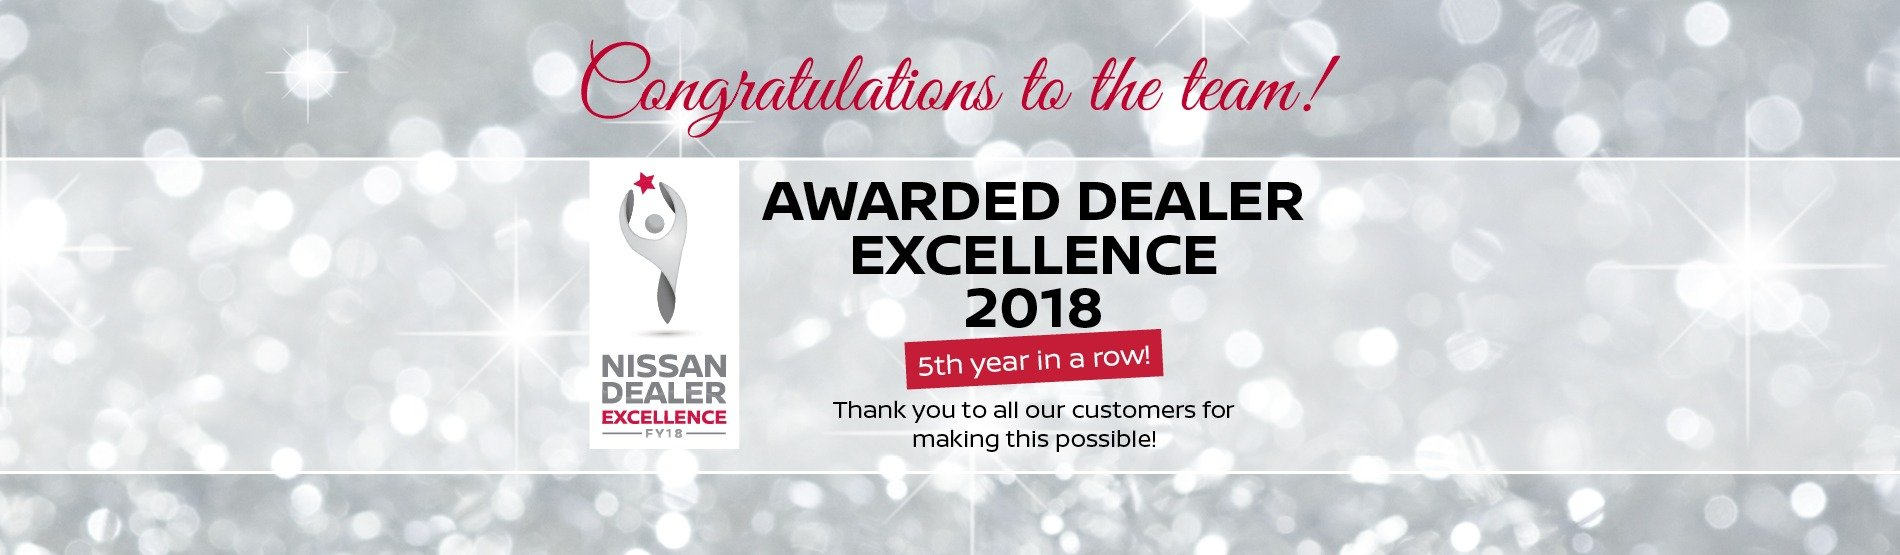 Dealer Excellence Awards